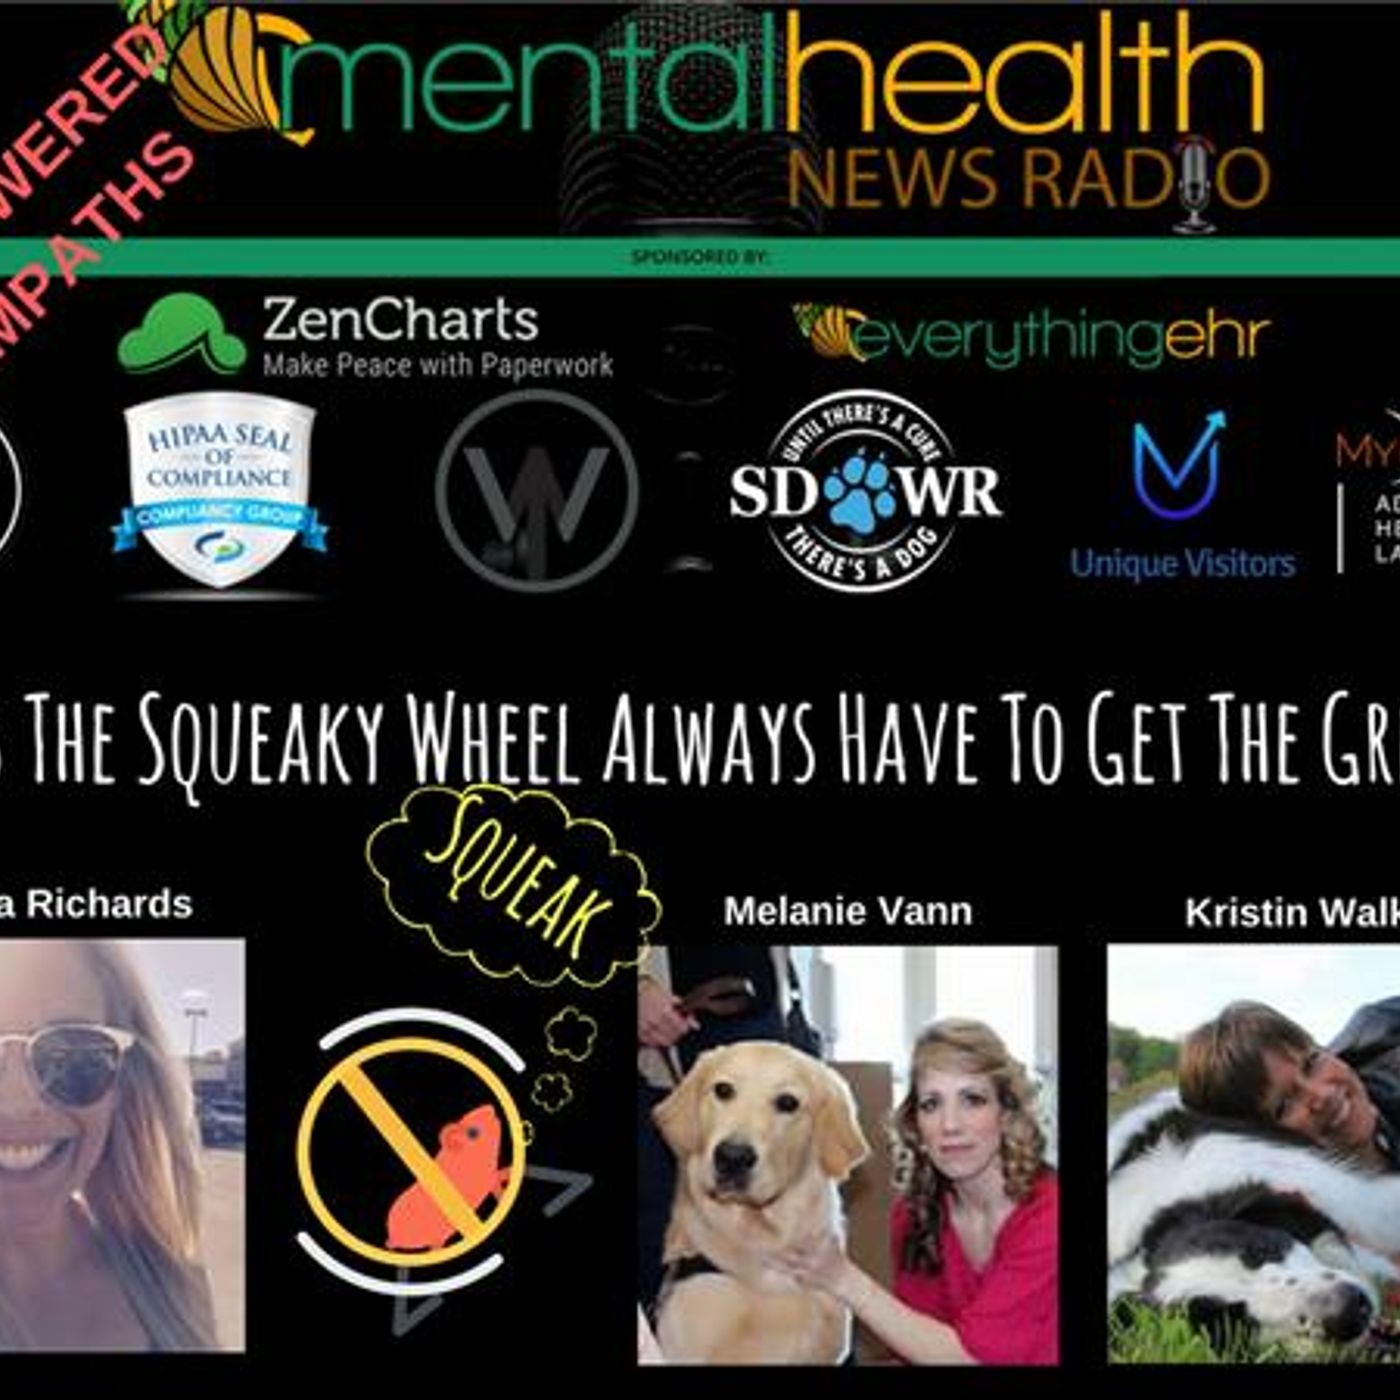 Mental Health News Radio - Empowered Empaths: Does The Squeaky Wheel Always Have To Get The Grease?